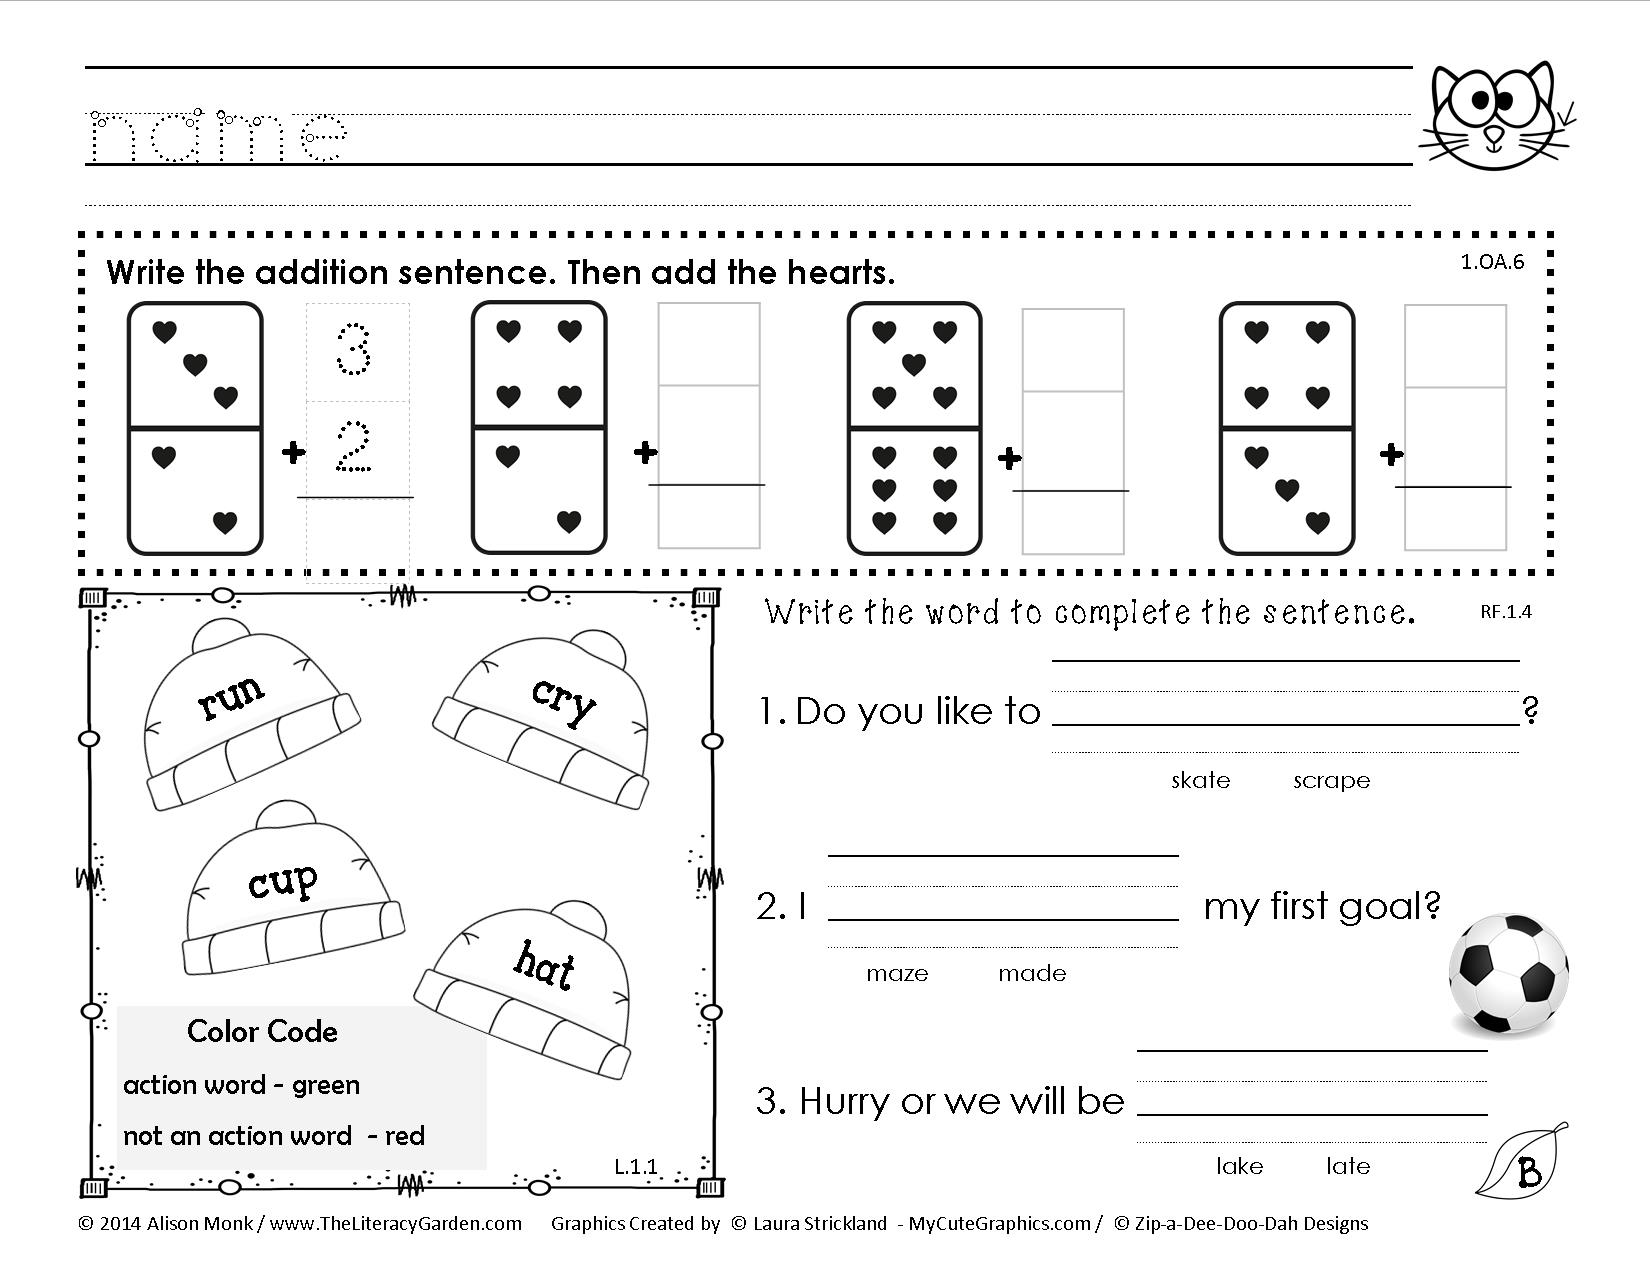 Worksheet Work For 1st Graders common core morning work as you can see there are a vast array of math reading and language skills covered best all kids love it i have gotten wonderful feedback from